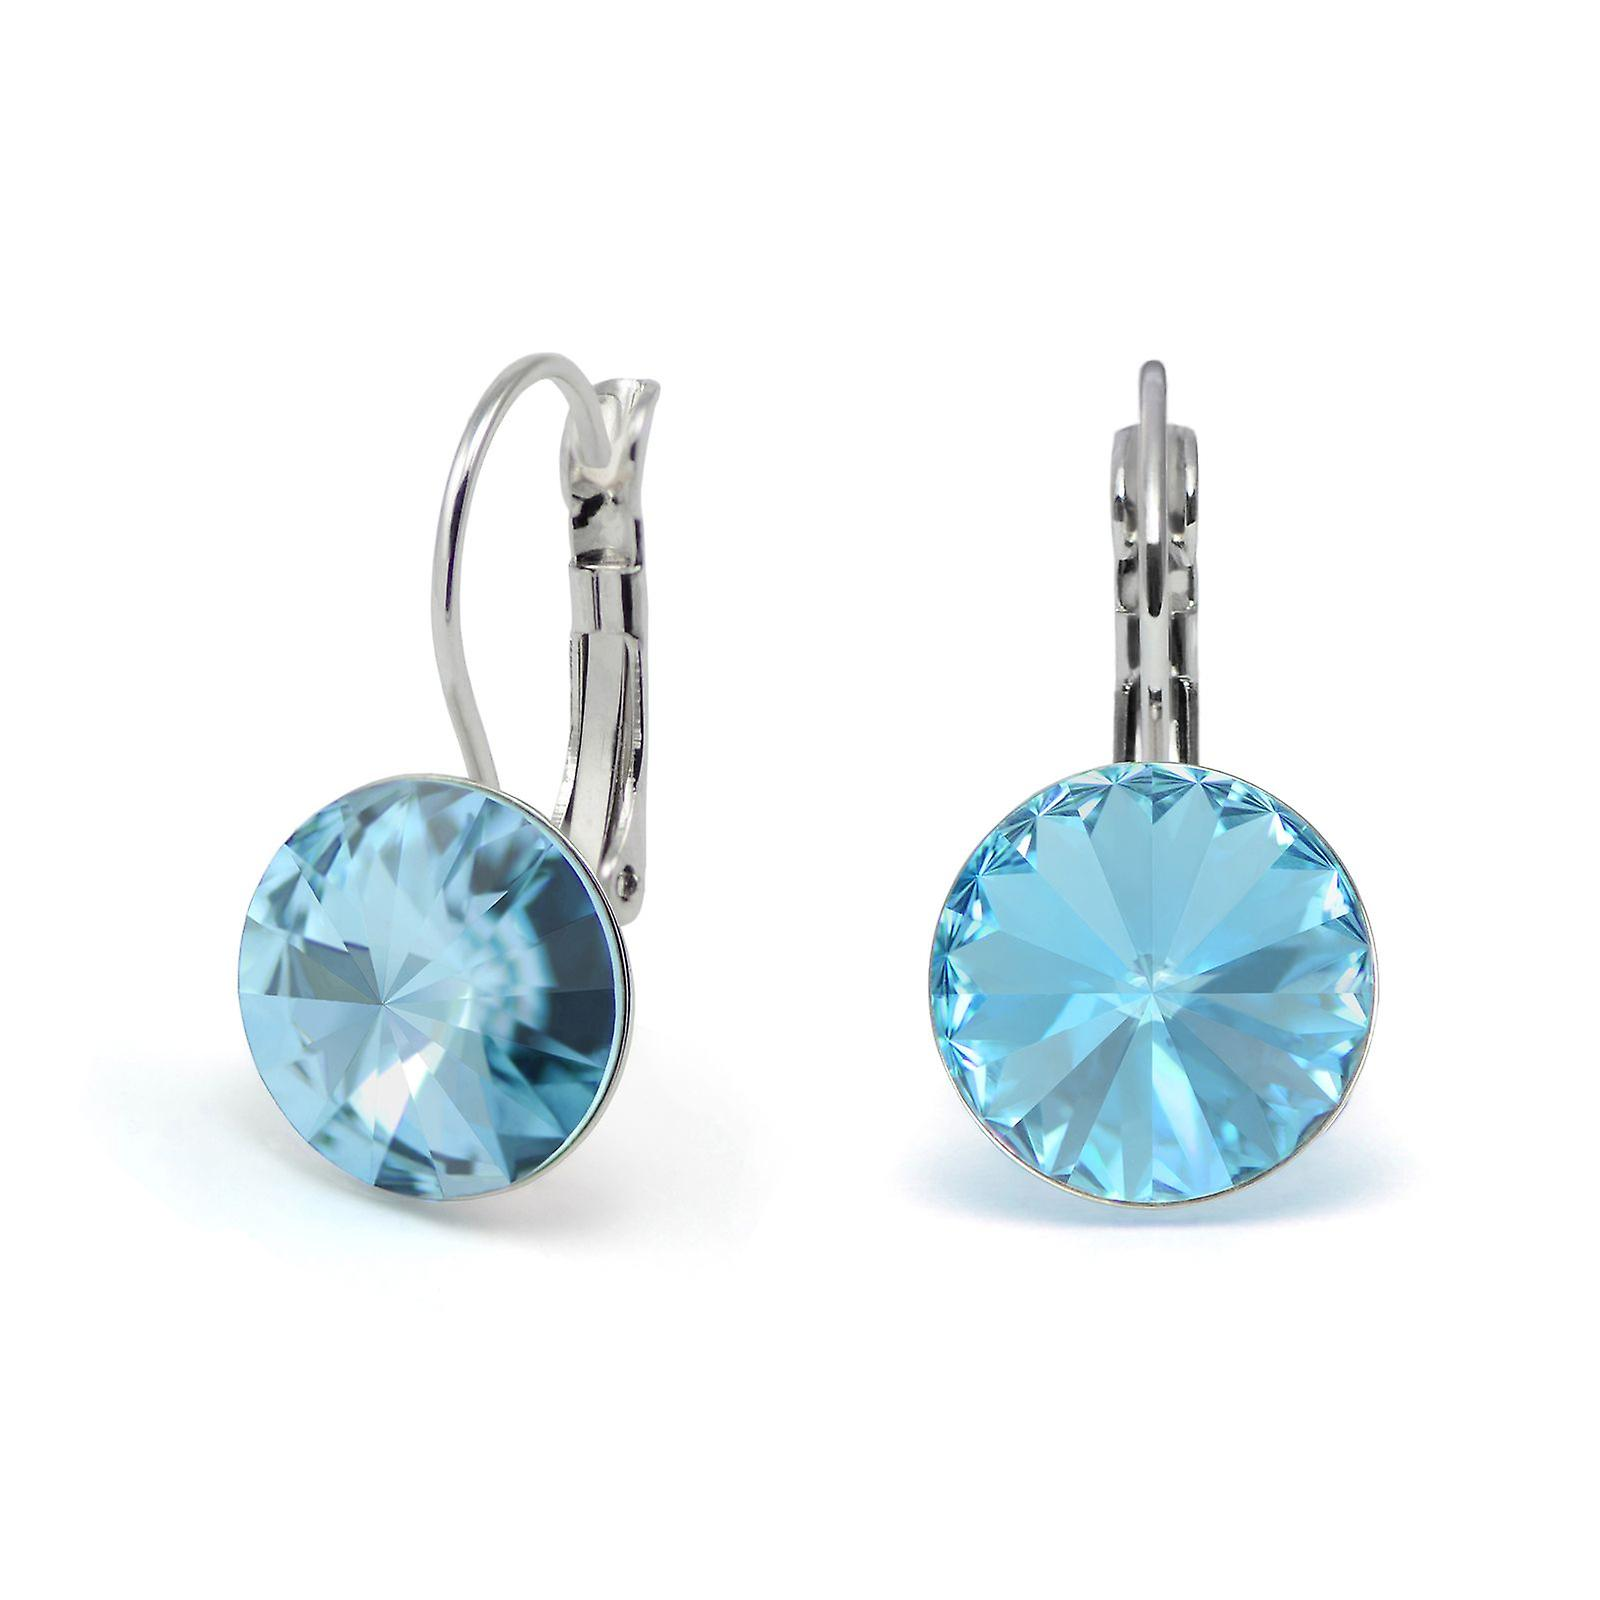 Crystal earrings Aquamarine EMB 1.2